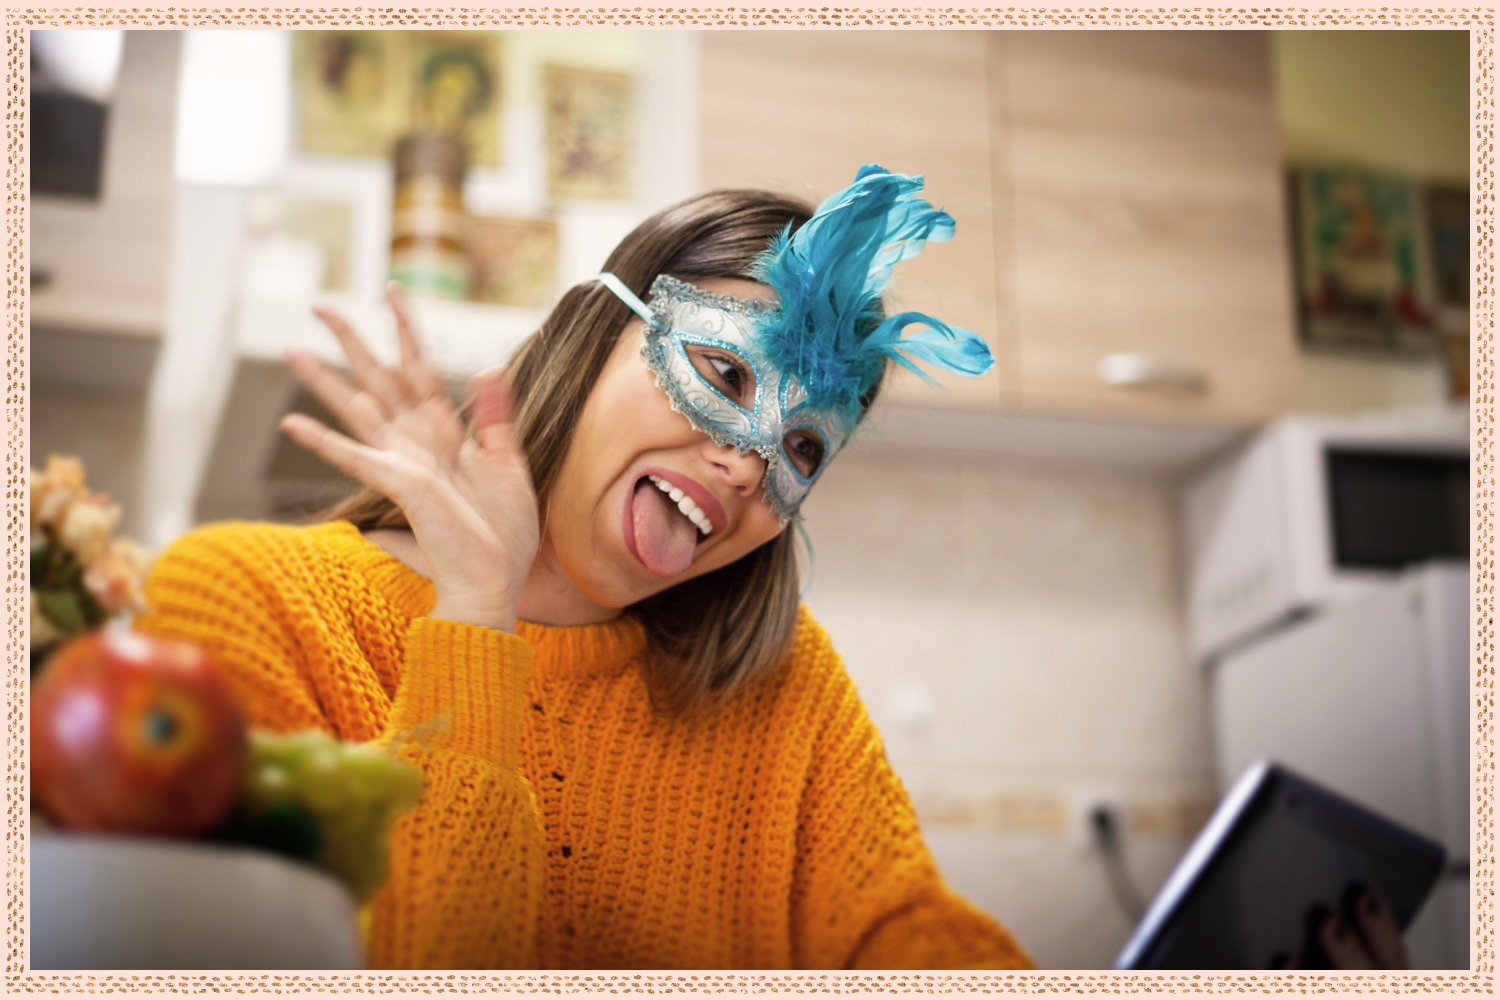 young woman with mask on sticking out her tongue and waving at tablet